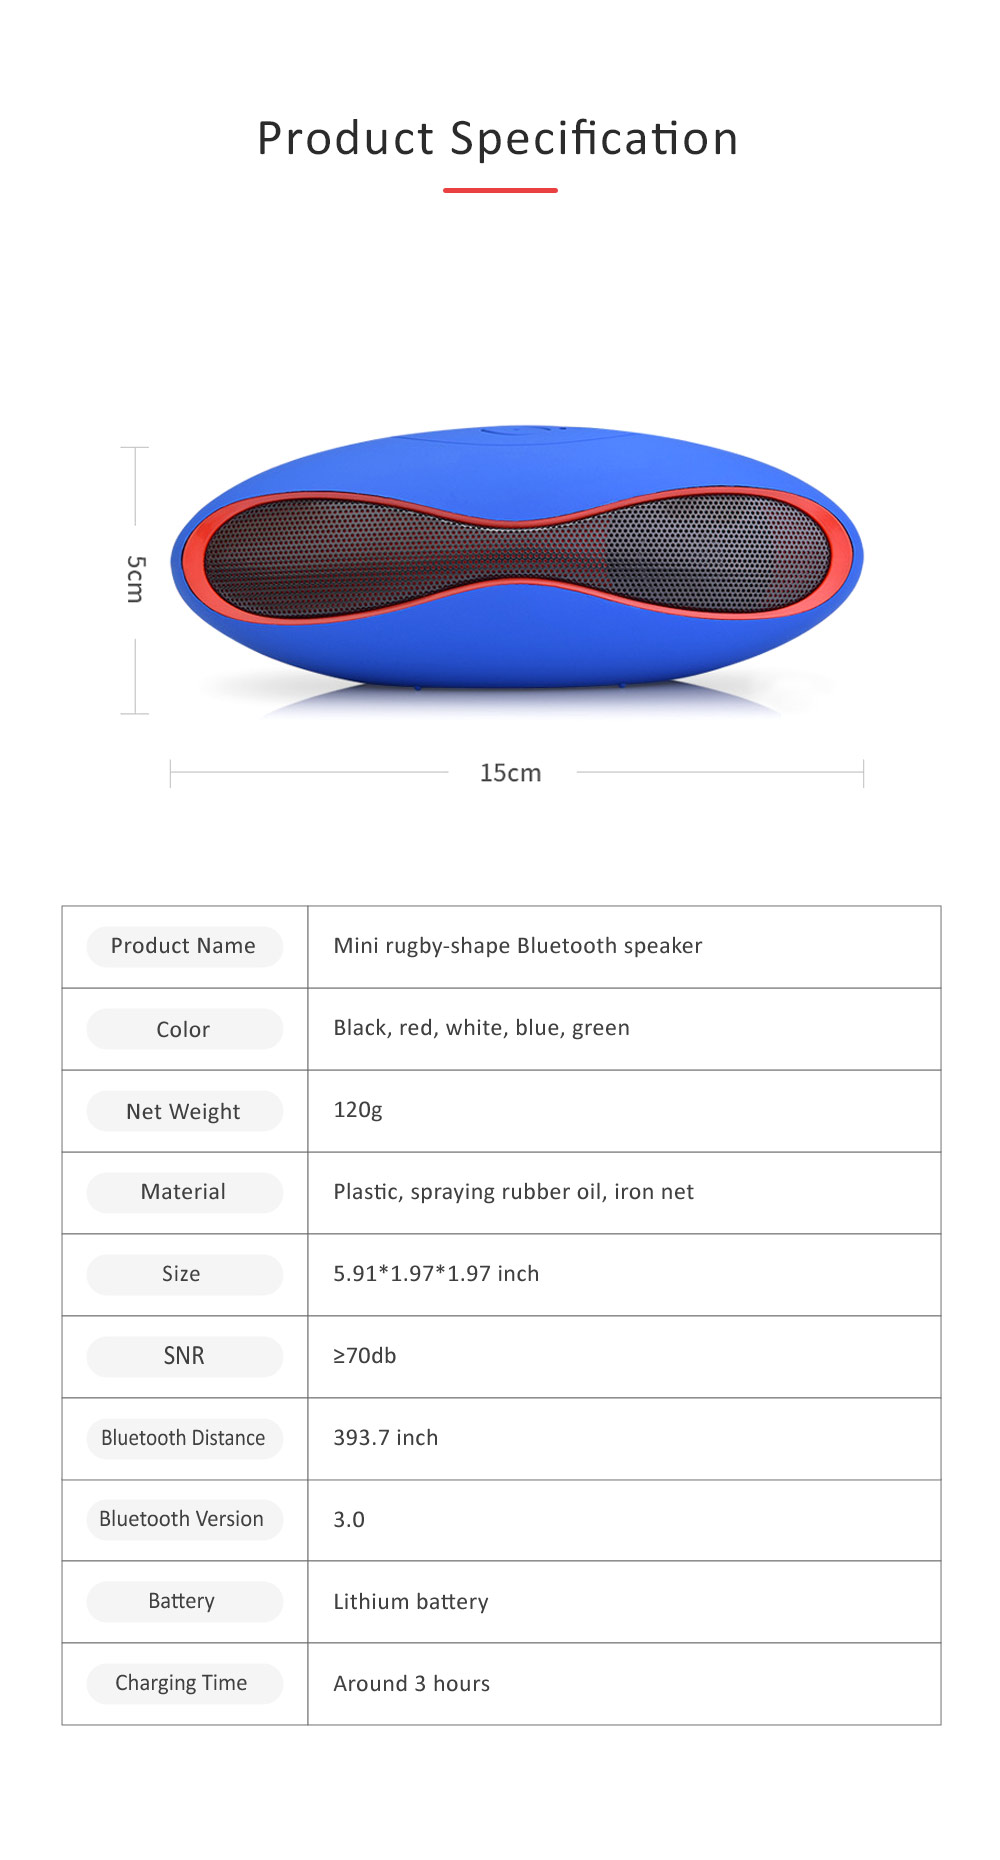 Mini Rugby-shape Bluetooth Speaker, 3D Sound Quality Speakers for Laptop, Tablets, Phones Bluetooth Wireless Speaker 6